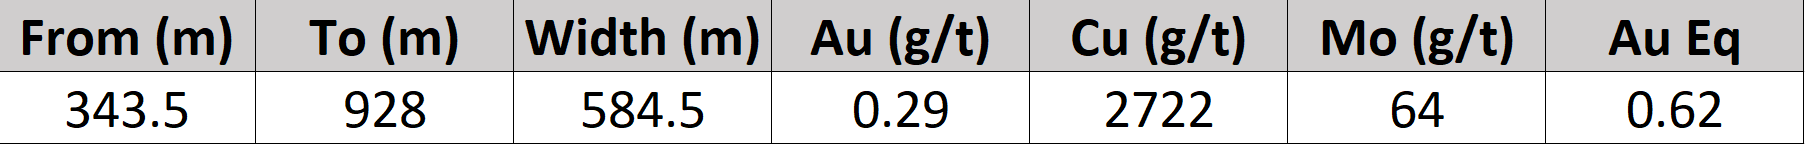 The assay grades are uncut. Gold equivalent values were calculated using gold, copper and molybdenum, using the metal prices: US$2.62/lb Cu, US$1500 Oz Au, and US$27/kg Mo. No allowances for metallurgical recoveries were considered as this is an early stage project and metallurgical data is not yet available. The formula utilized to calculate equivalent values was Au Eq (g/t) = Au g/t + (Cu % X 1.20336) + (Mo g/t X 0.00056). Values given in the table have been rounded and apparent calculation errors resulting from the calculation are not considered to be material.